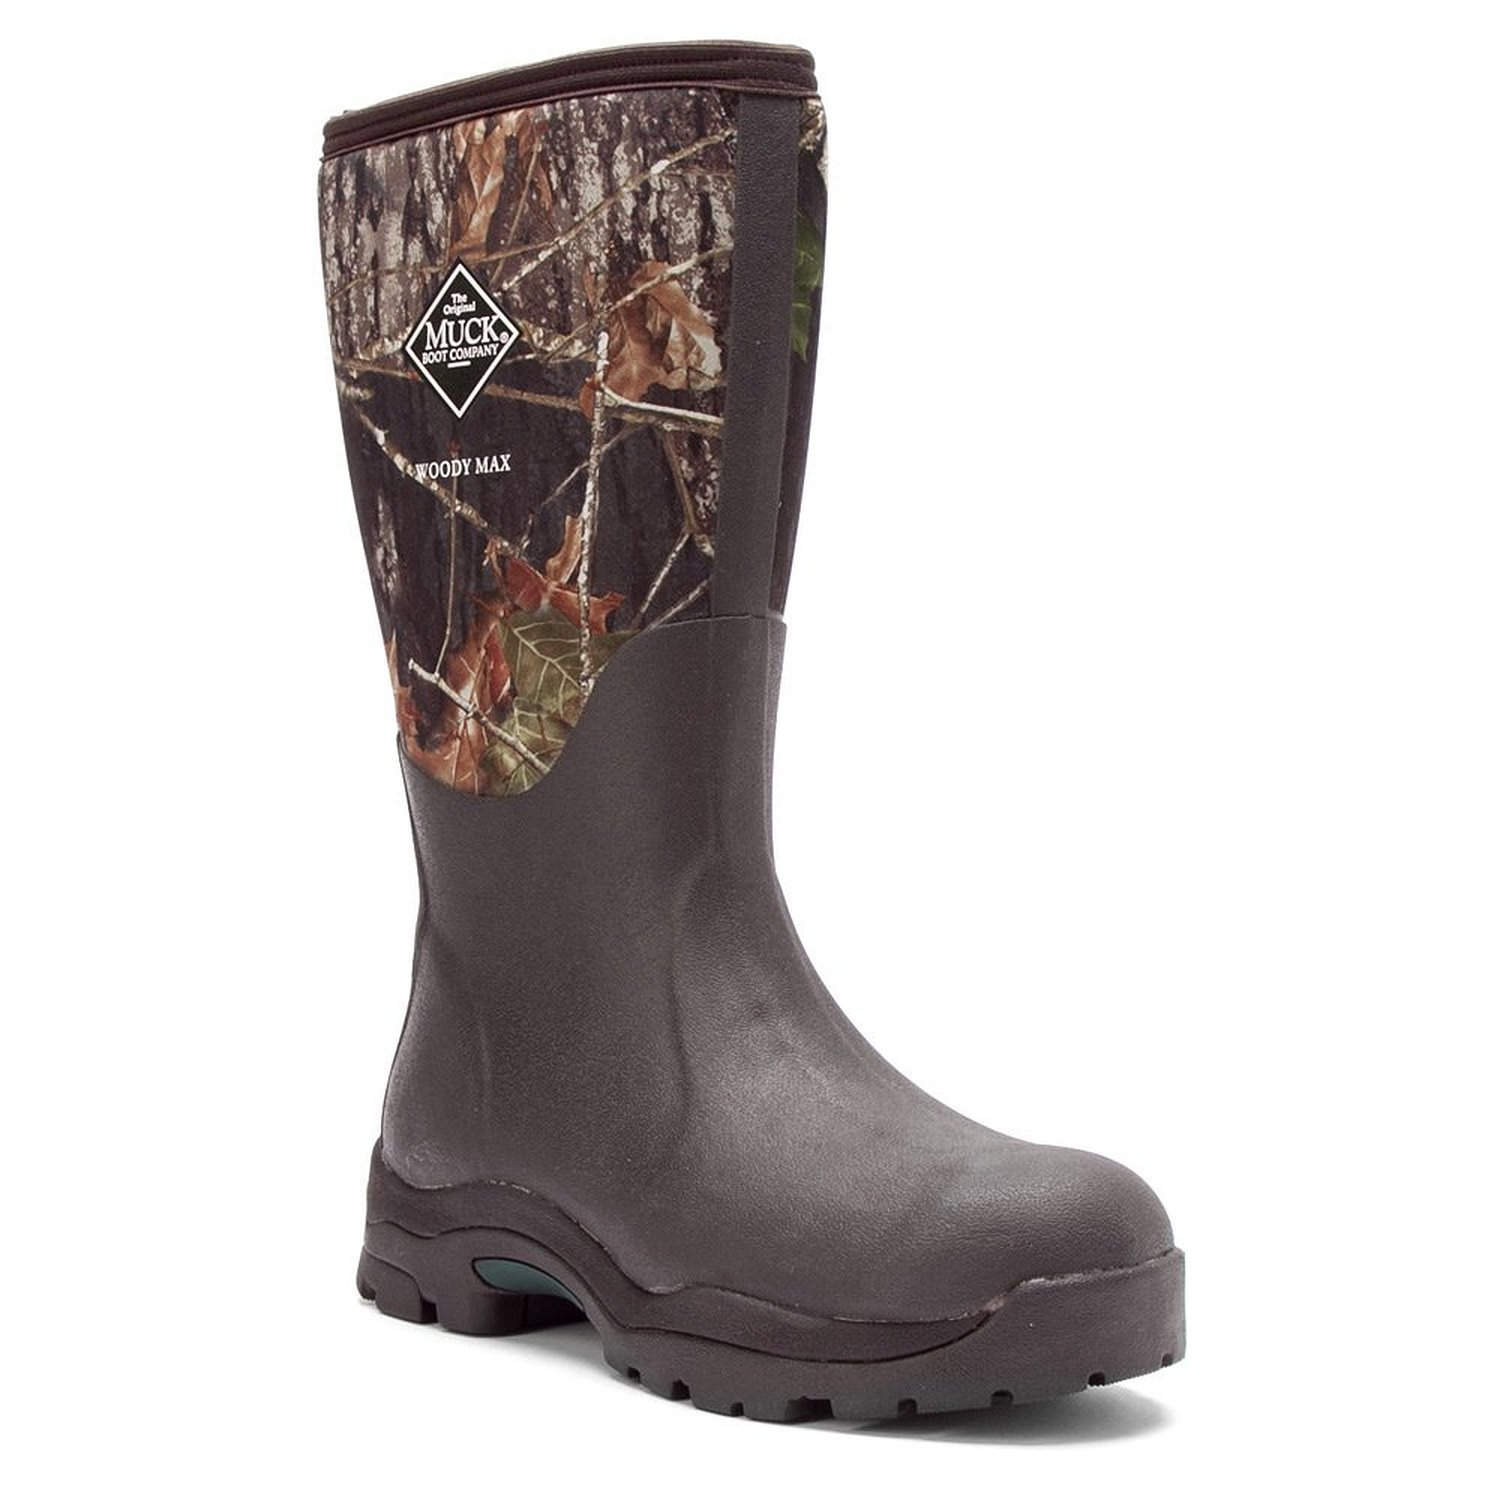 Muck Boot Company Women'S Woody Max Hunting Boot, Color: Mossy Oak Breakup, Size